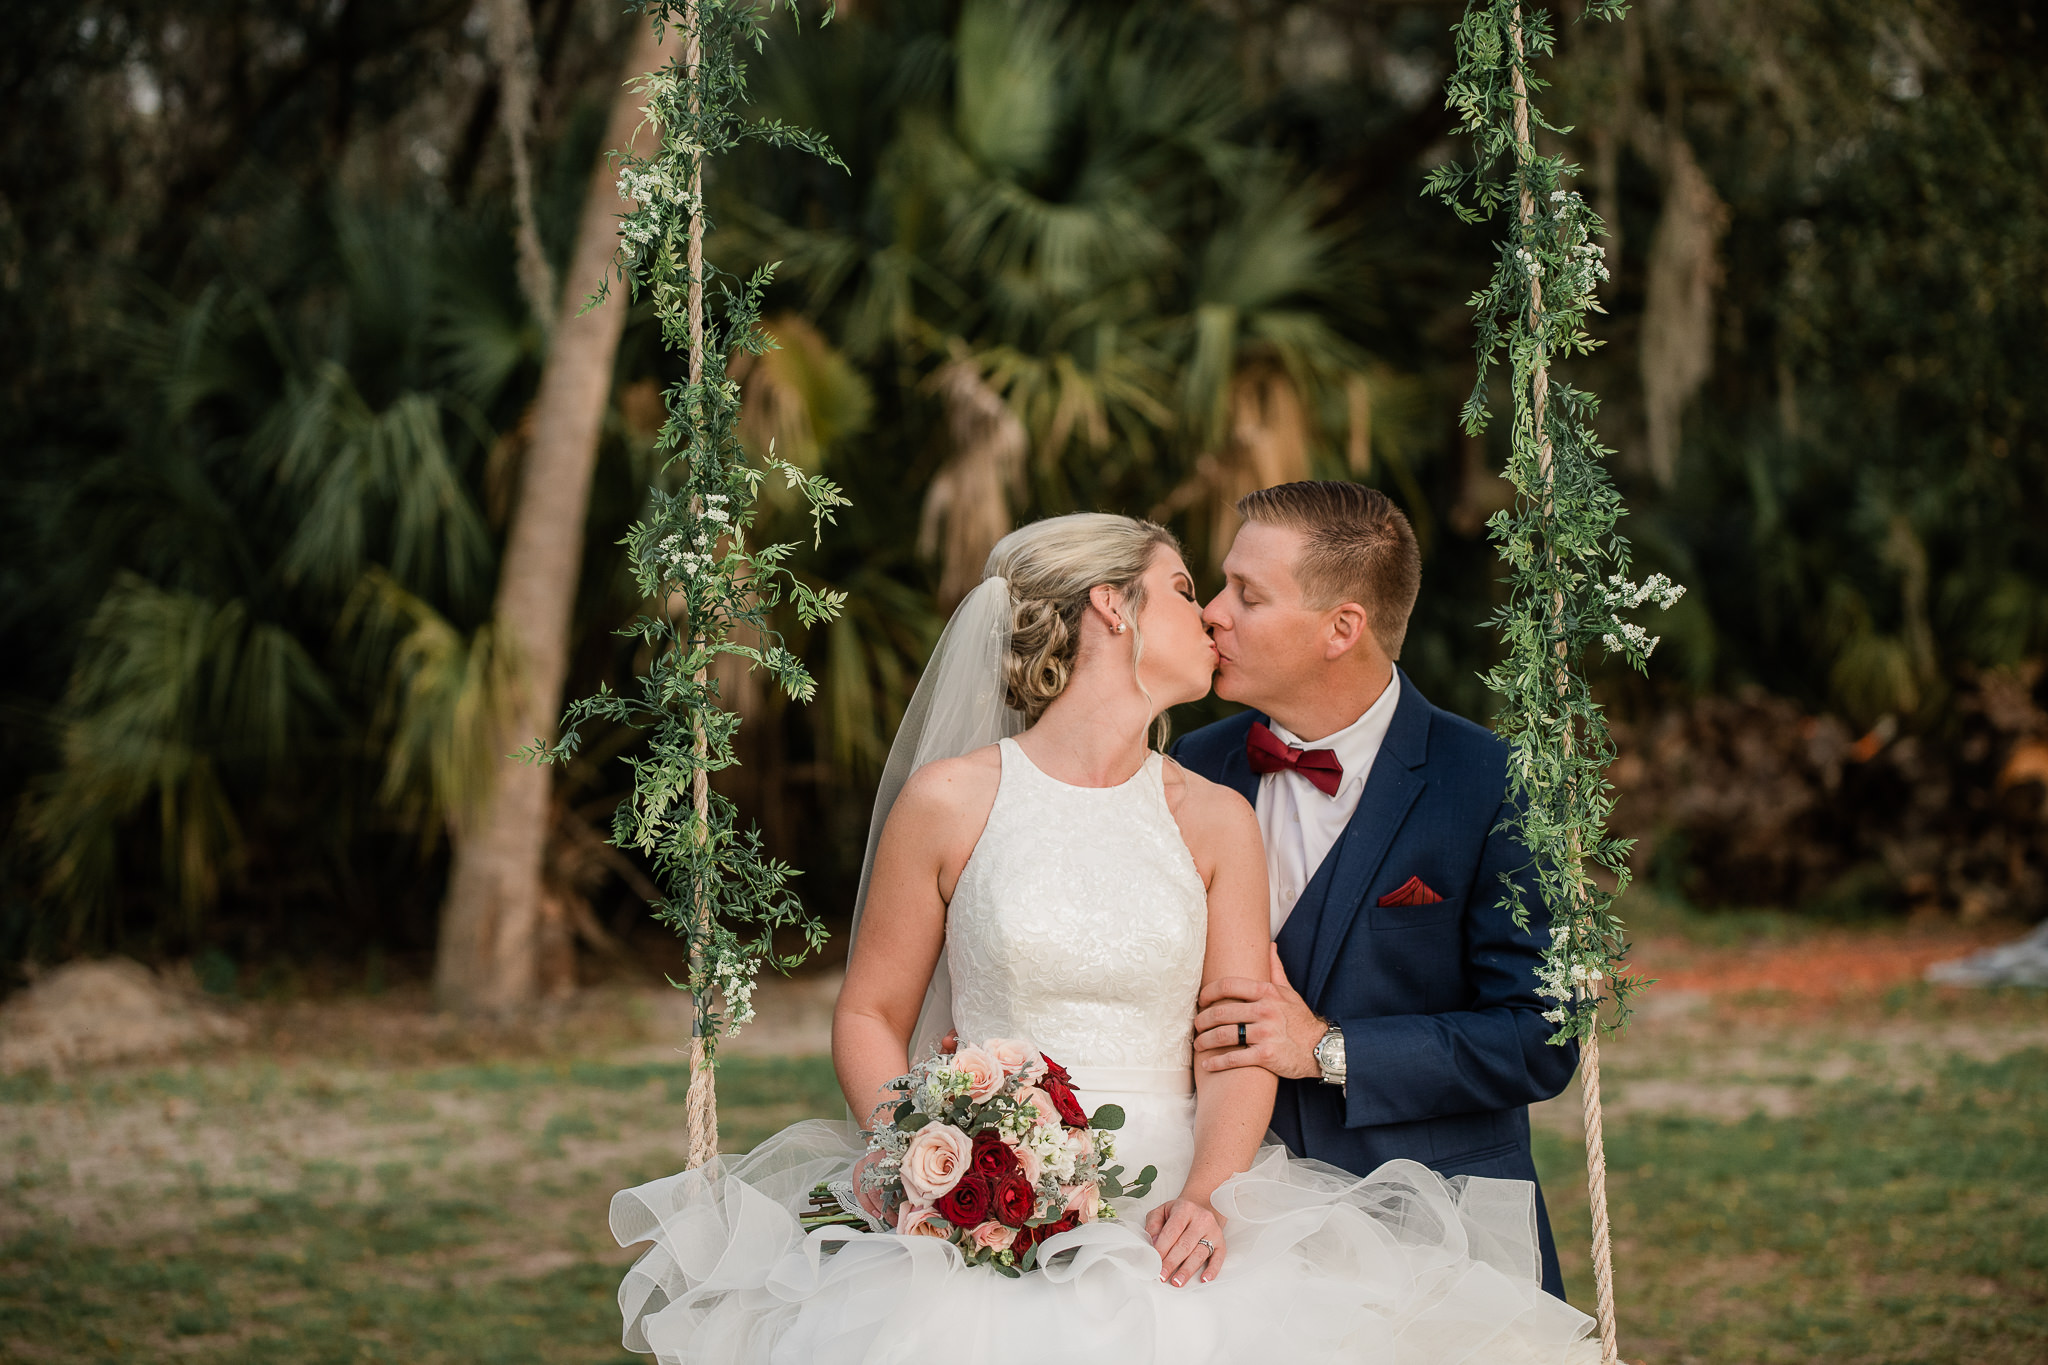 TAMPA_WEDDING_PHOTOGRAPHER_DRMZ_SPARROW_BARN_38.jpg